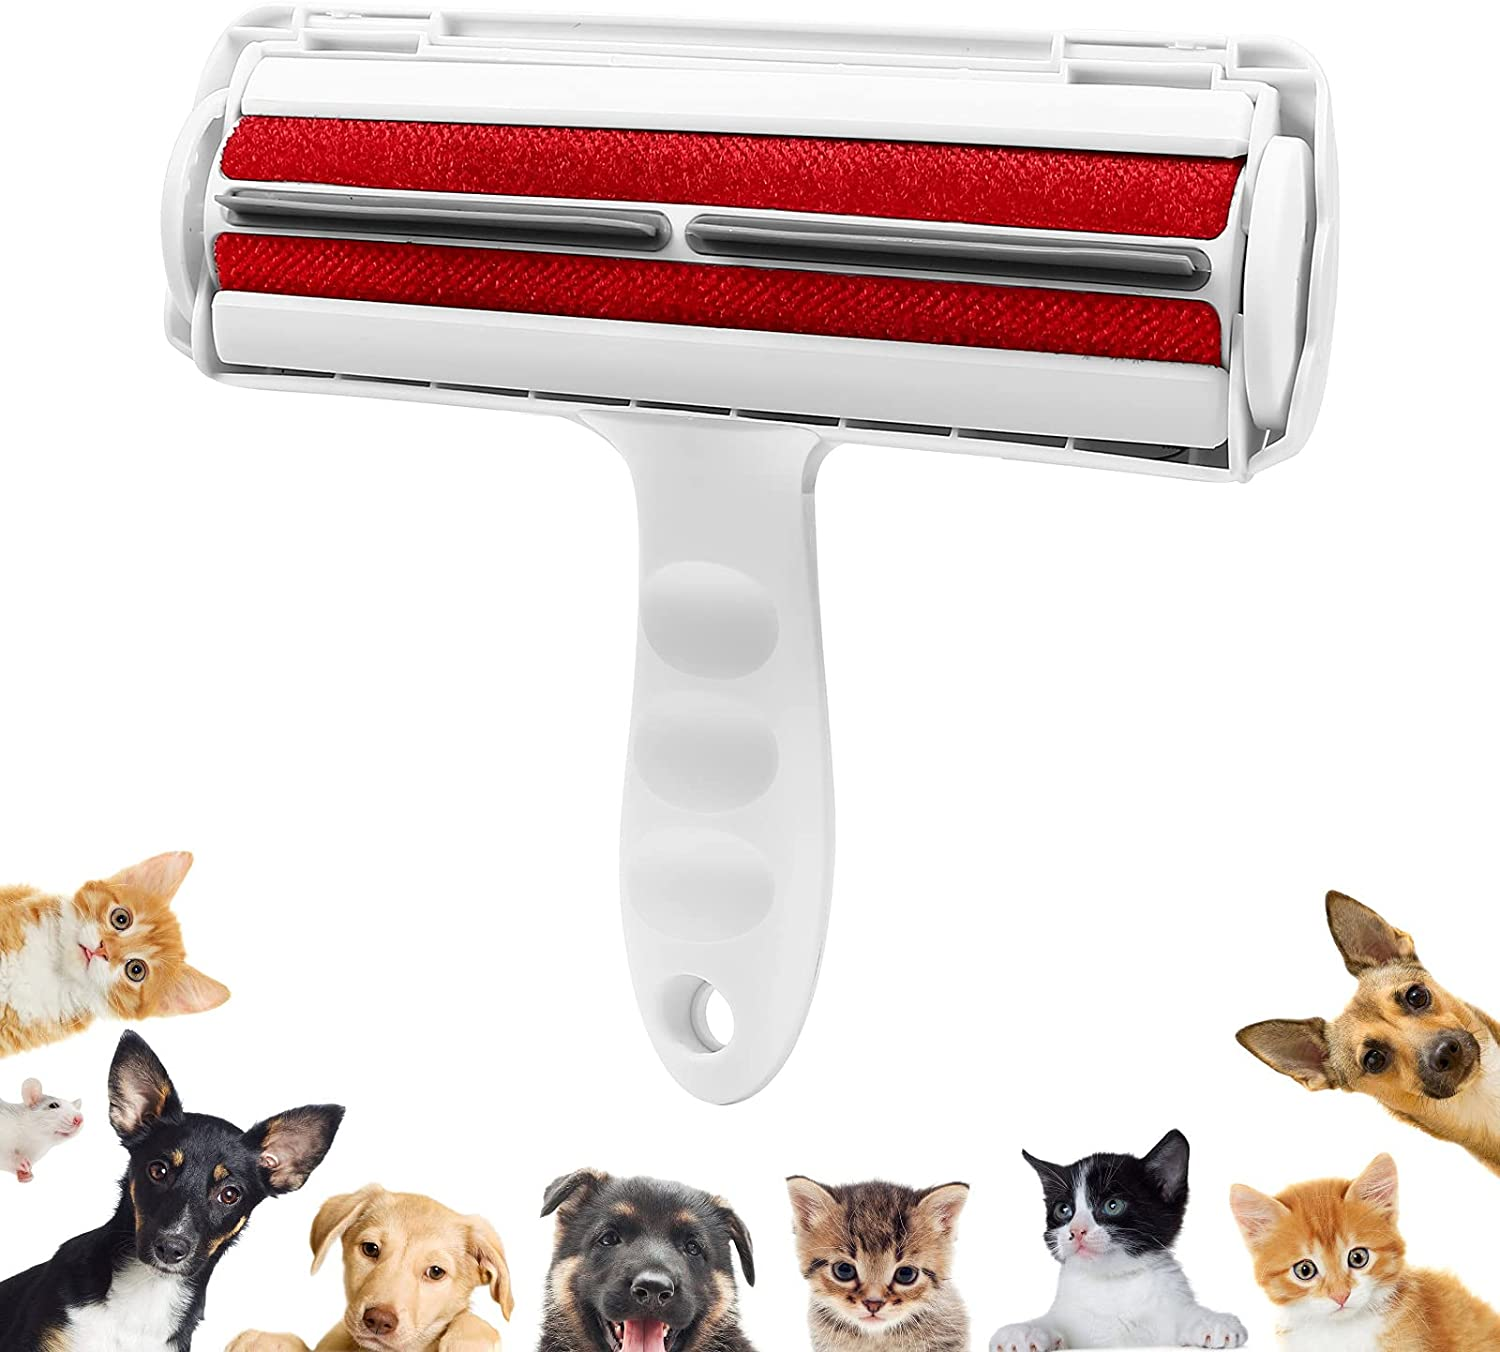 Lecieter Pet Hair Remover Roller,Reusable Dog & Cat Hair Remover Roller with Self-Cleaning, Perfect Hair Remover for Furniture, Couch, Carpet, Car Seat